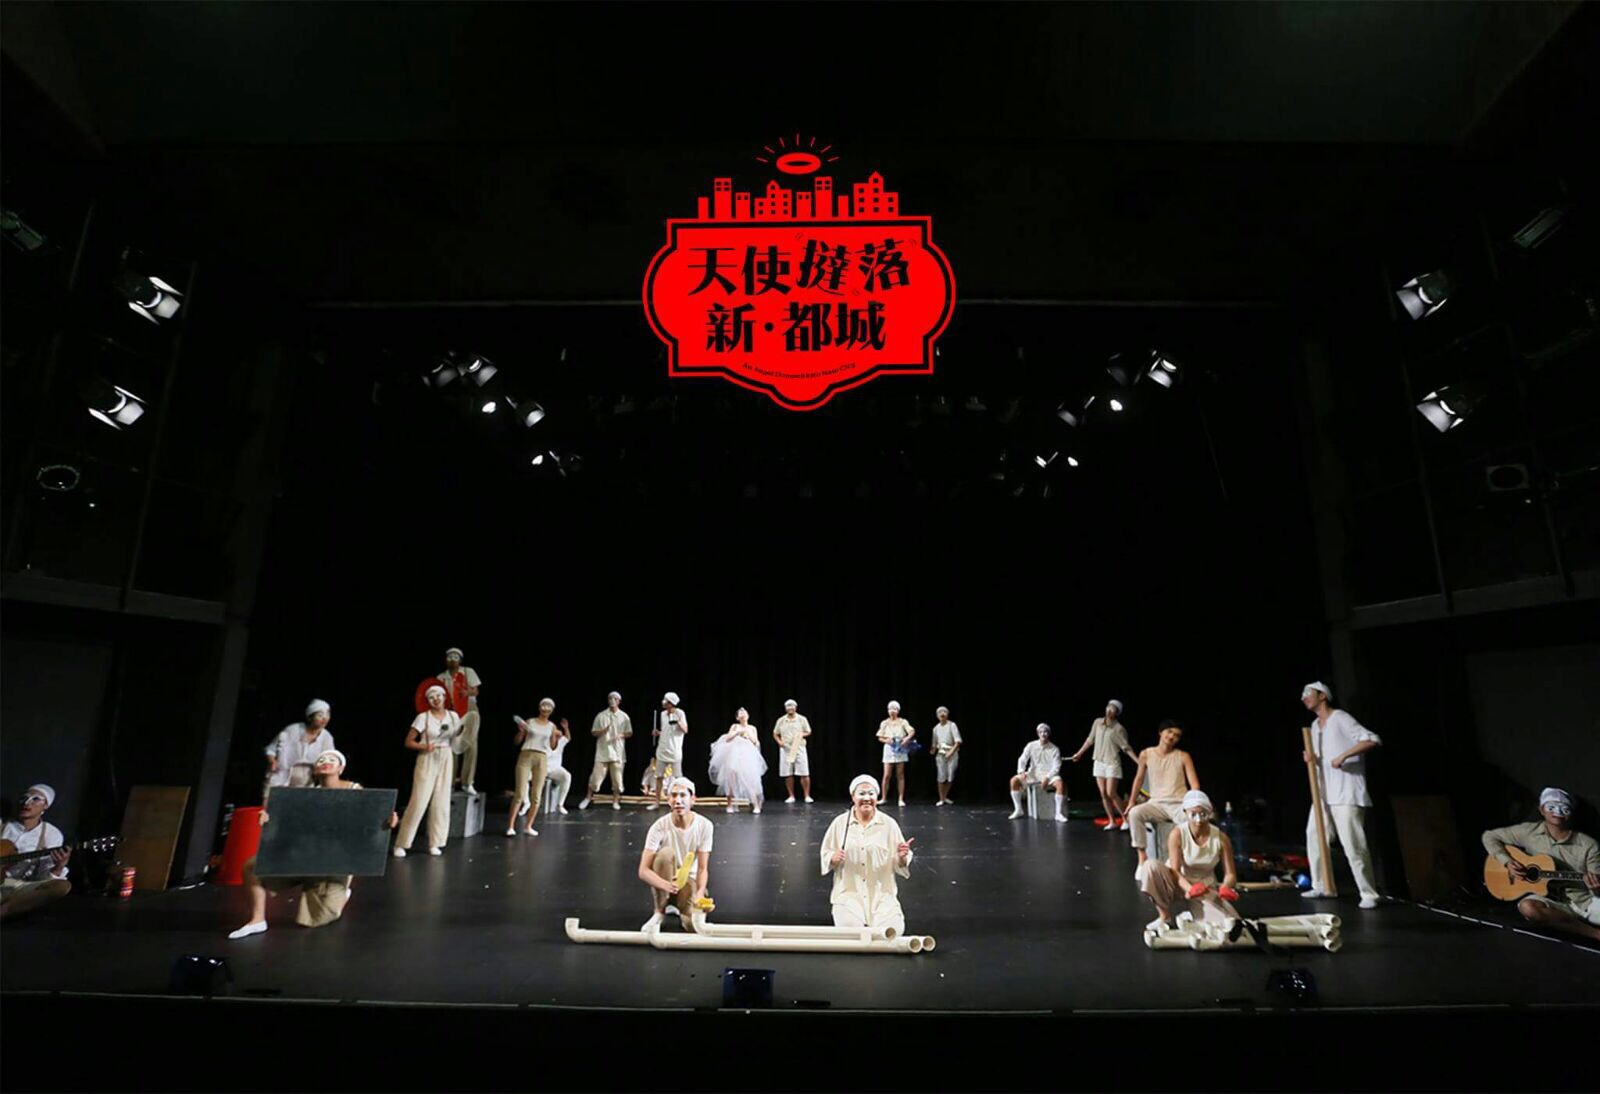 http://ubeat.com.cuhk.edu.hk/wp-content/uploads/2017/129_performingart_the-Whole-Theatre.jpeg